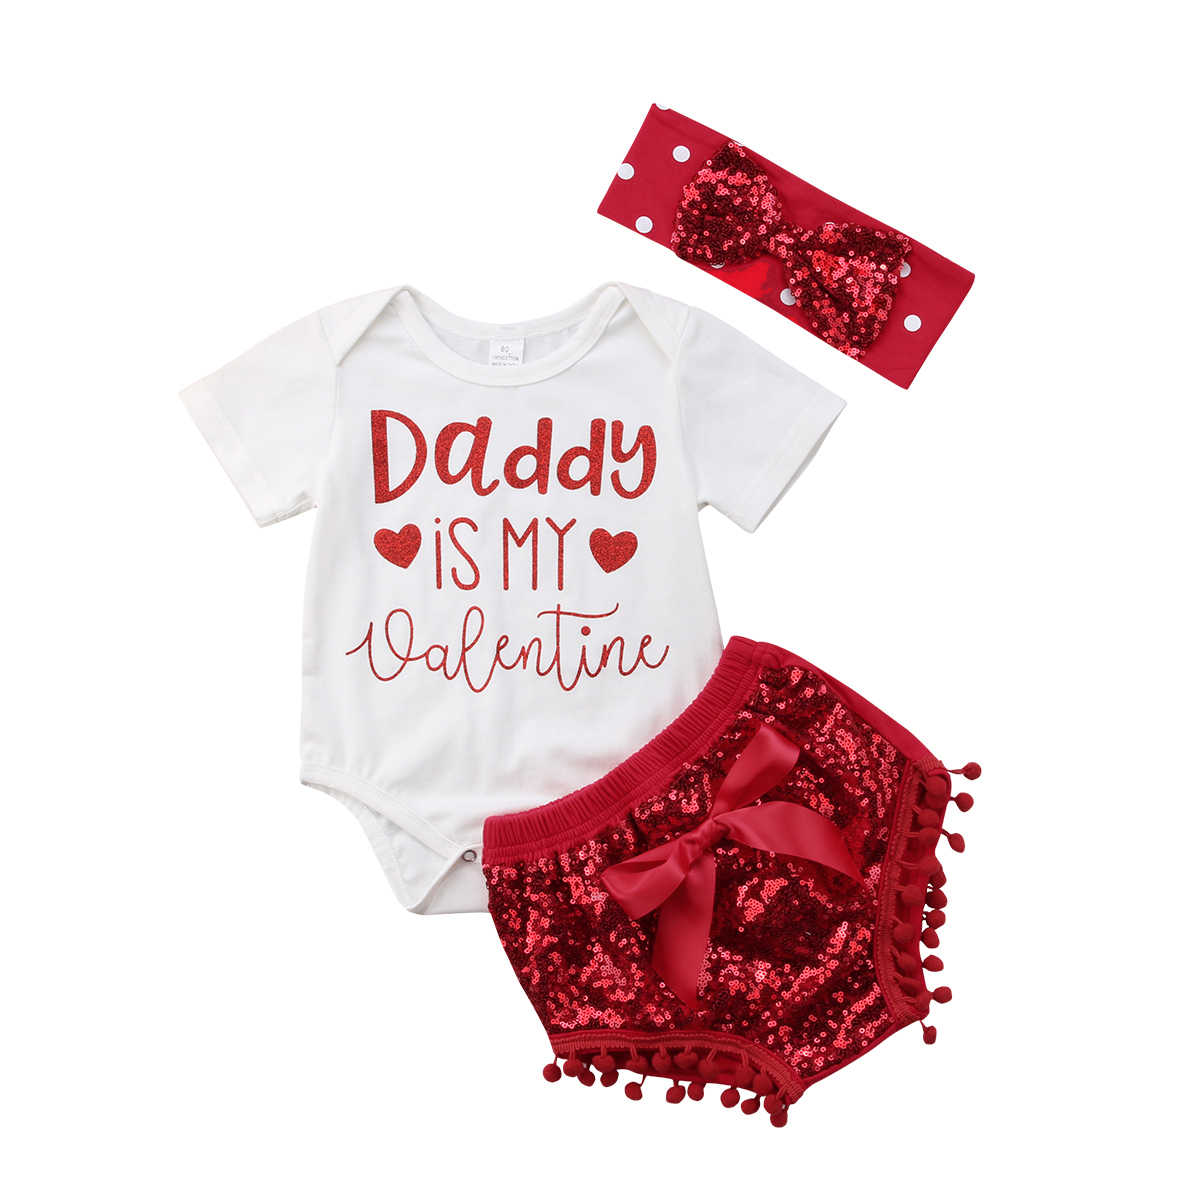 Newborn Baby Girls Tops Valentine Romper Bowknot Shorts Red Sequins Outfits Pcs Summer Cute Set